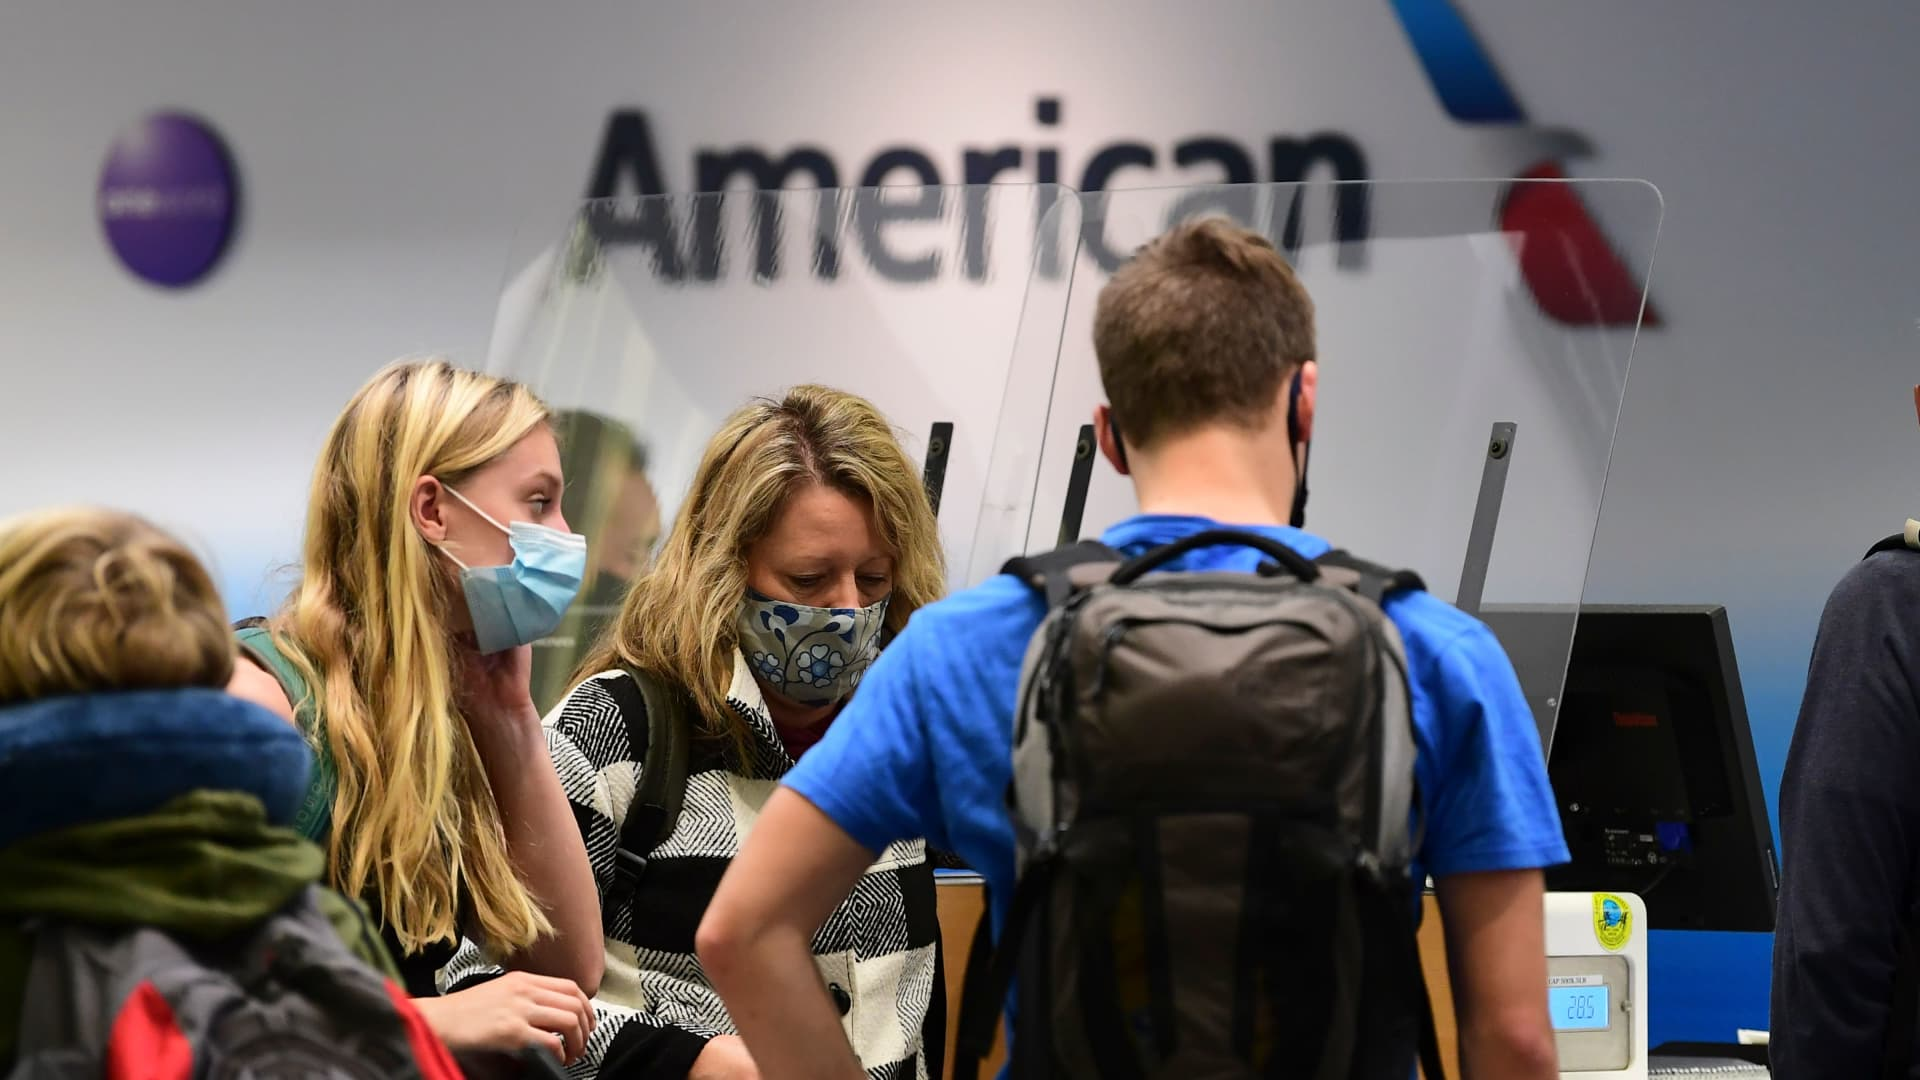 Travelers at the American Airlines check-in counter at Los Angeles International Airport on October 1, 2020.